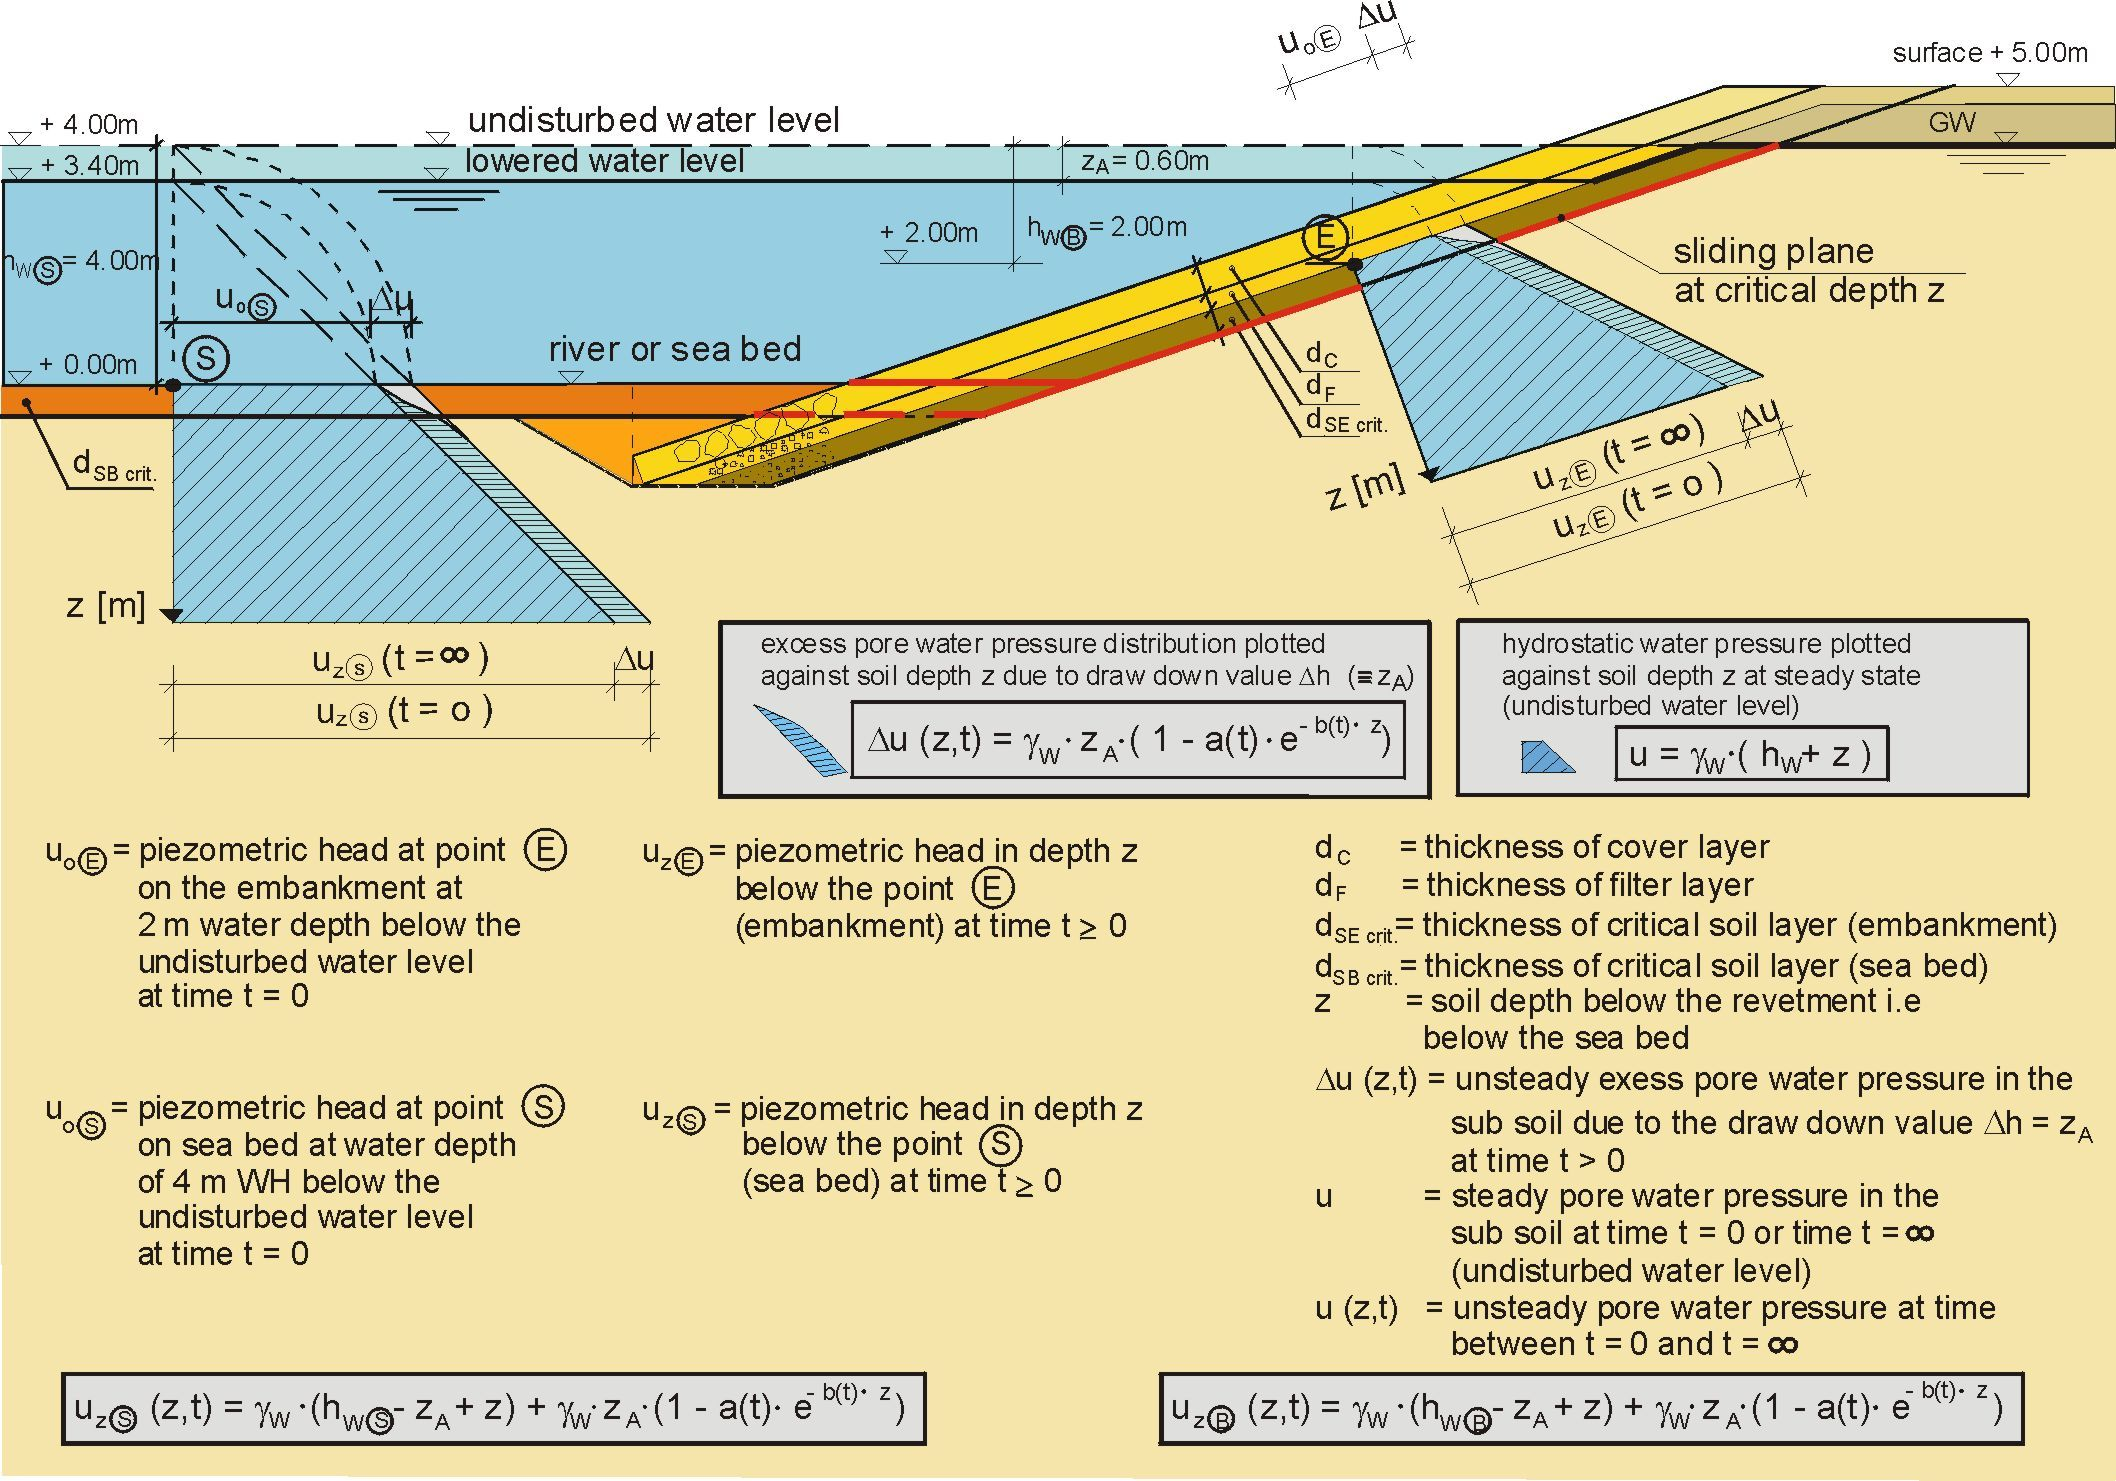 Scheme of the hydraulic loading influence on bed and embankment stability in navigational canals